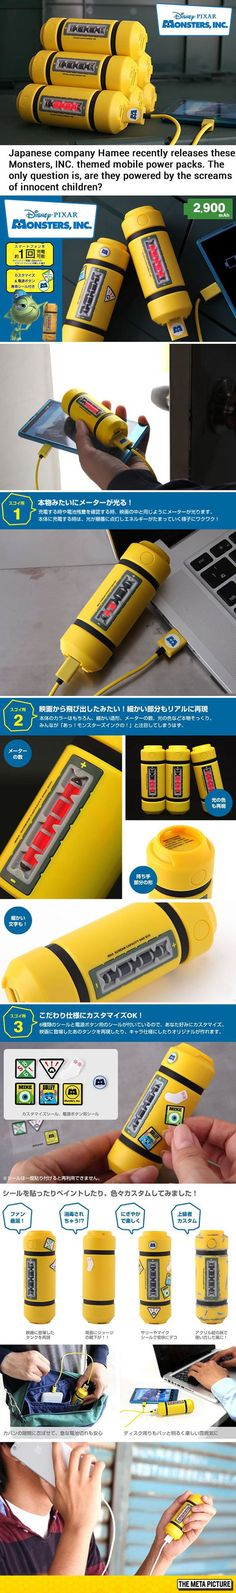 Monster, Inc. Themed Mobile Power Packs. I Wonder What Are They Powered By